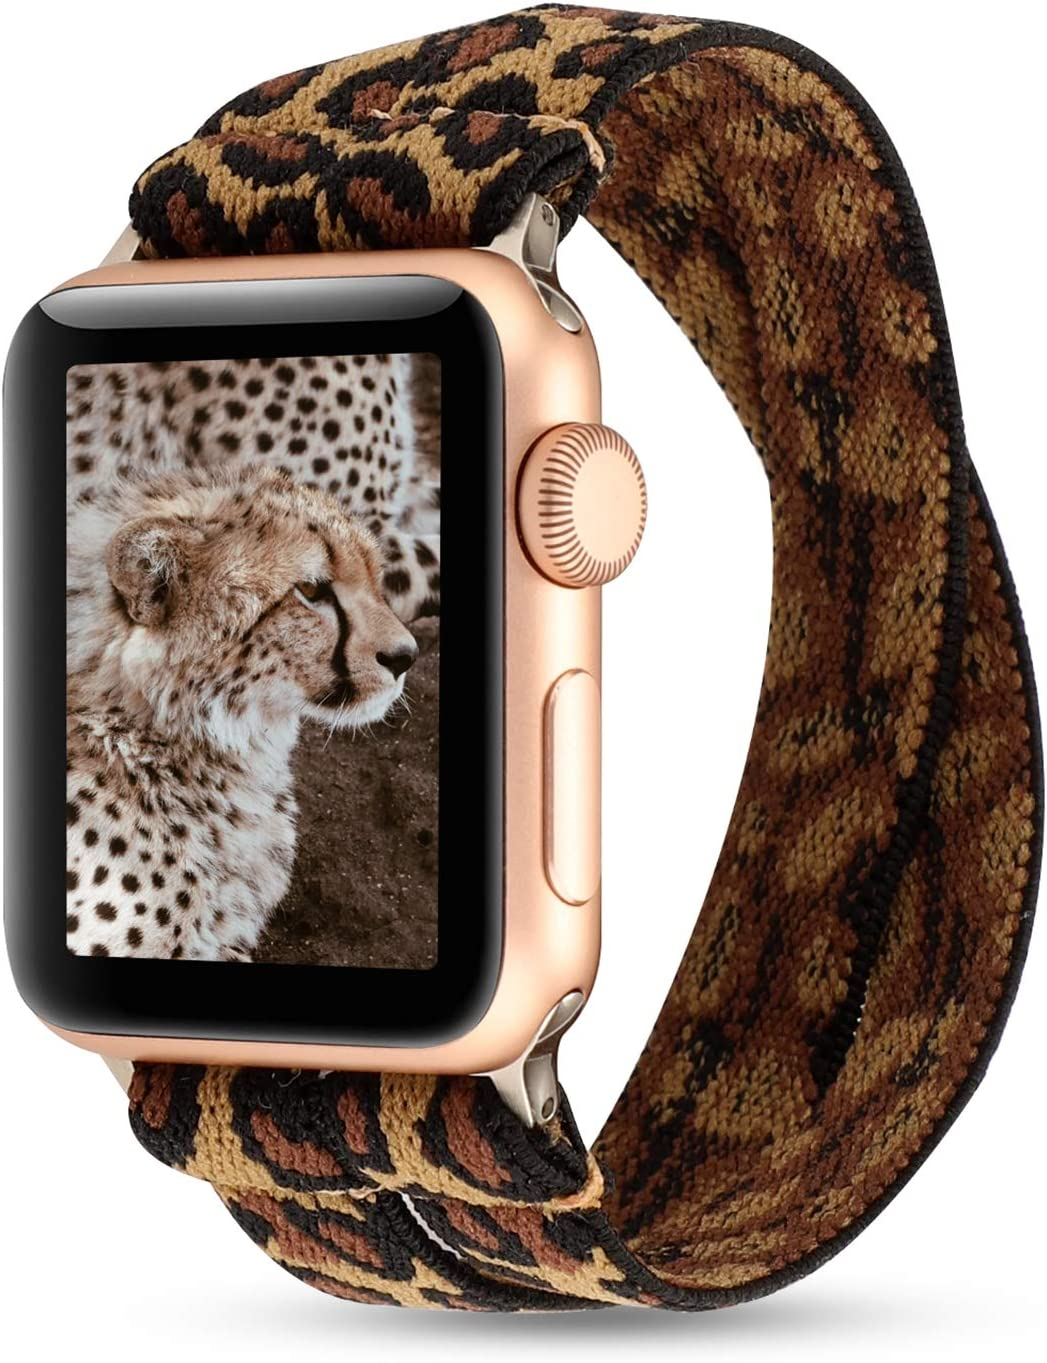 PENKEY Women Elastic Watch Band Compatible for Apple Watch 38mm 40mm 42mm 44mm,Stretchy Wristbands Replacement for IWatch Series 1 2 3 4 5 (Double Leopard, 38/40mm)